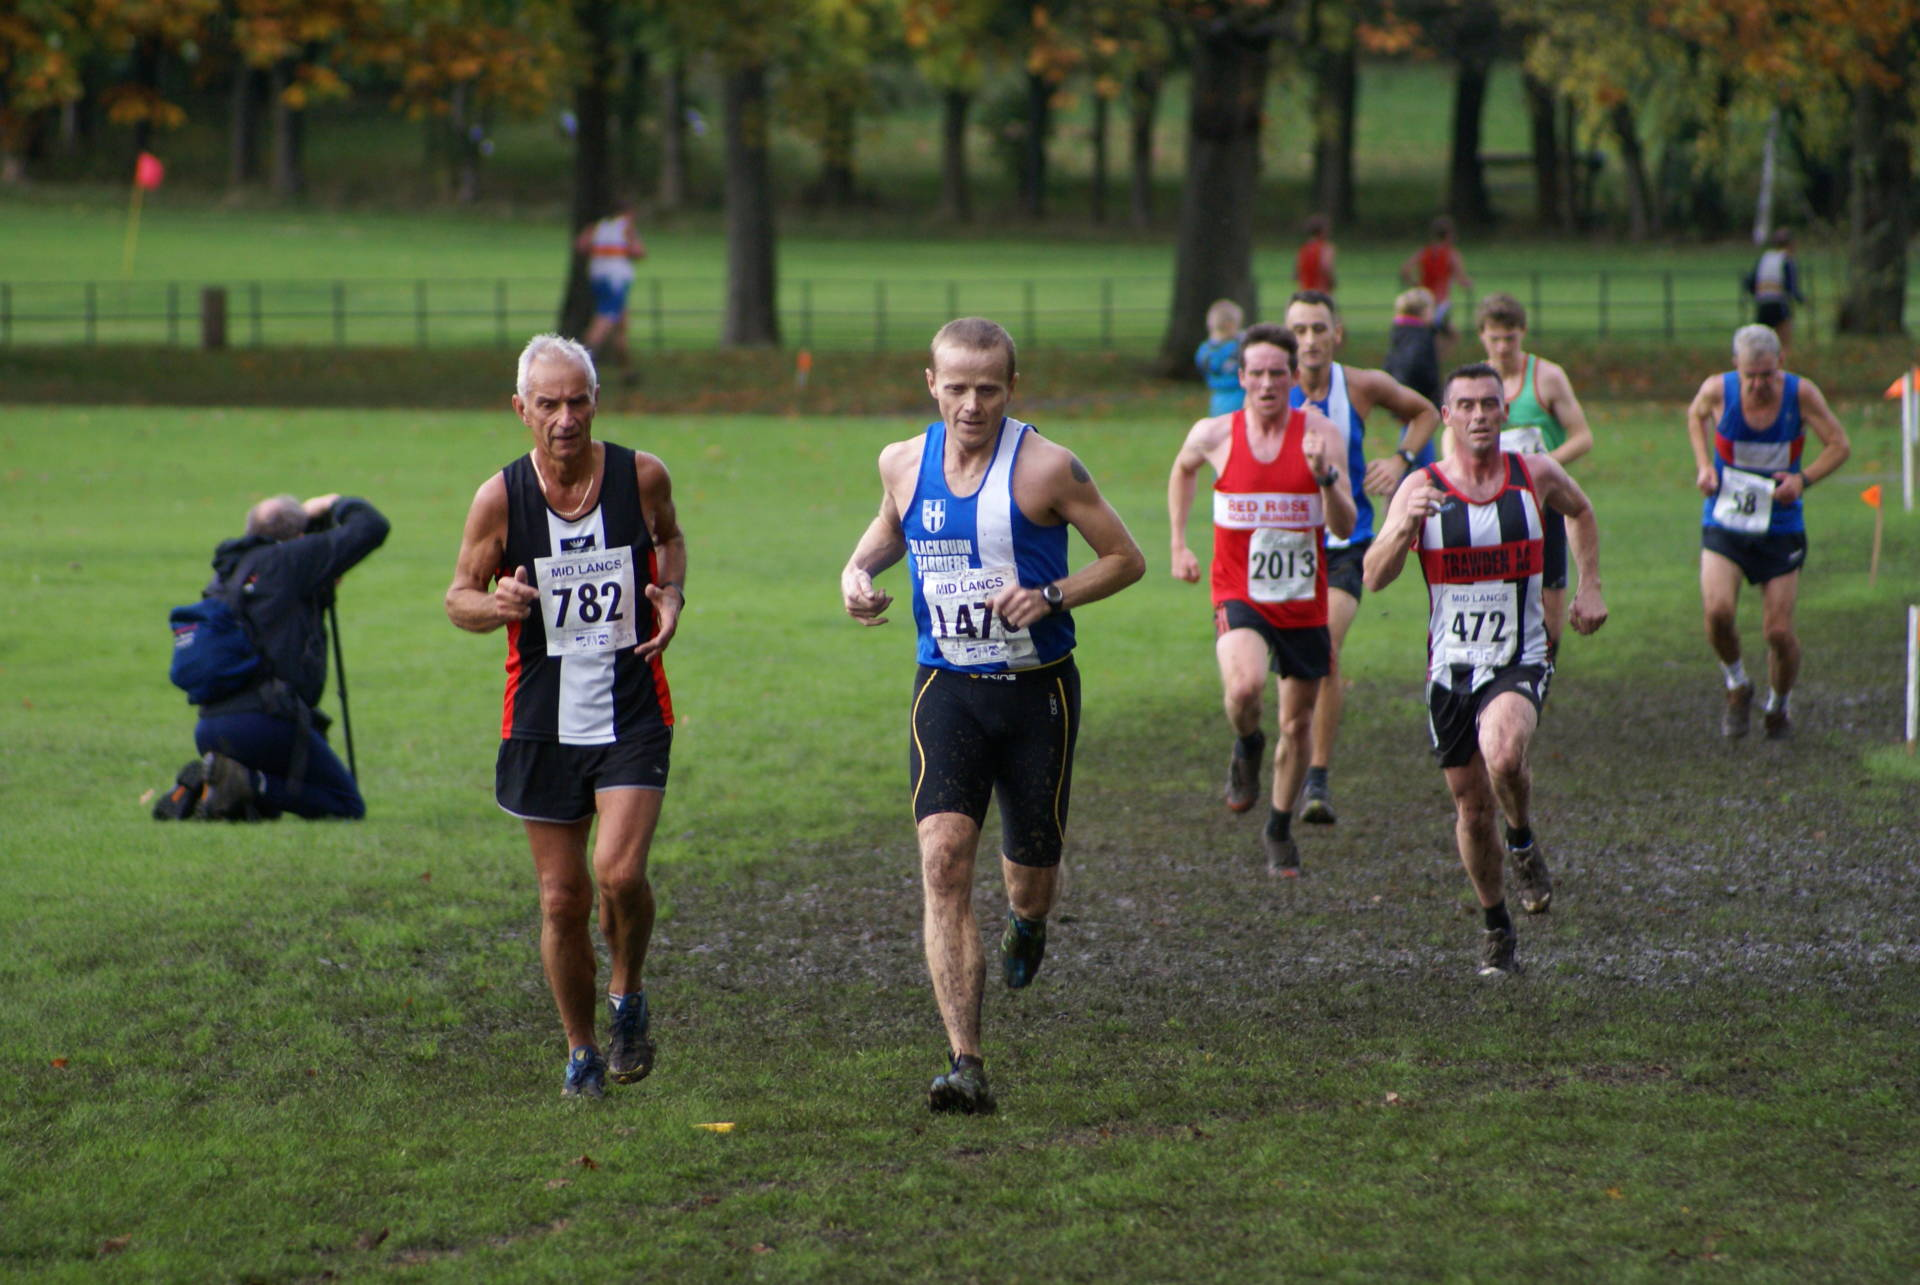 Mid Lancs XC League kicks off at Townley Hall